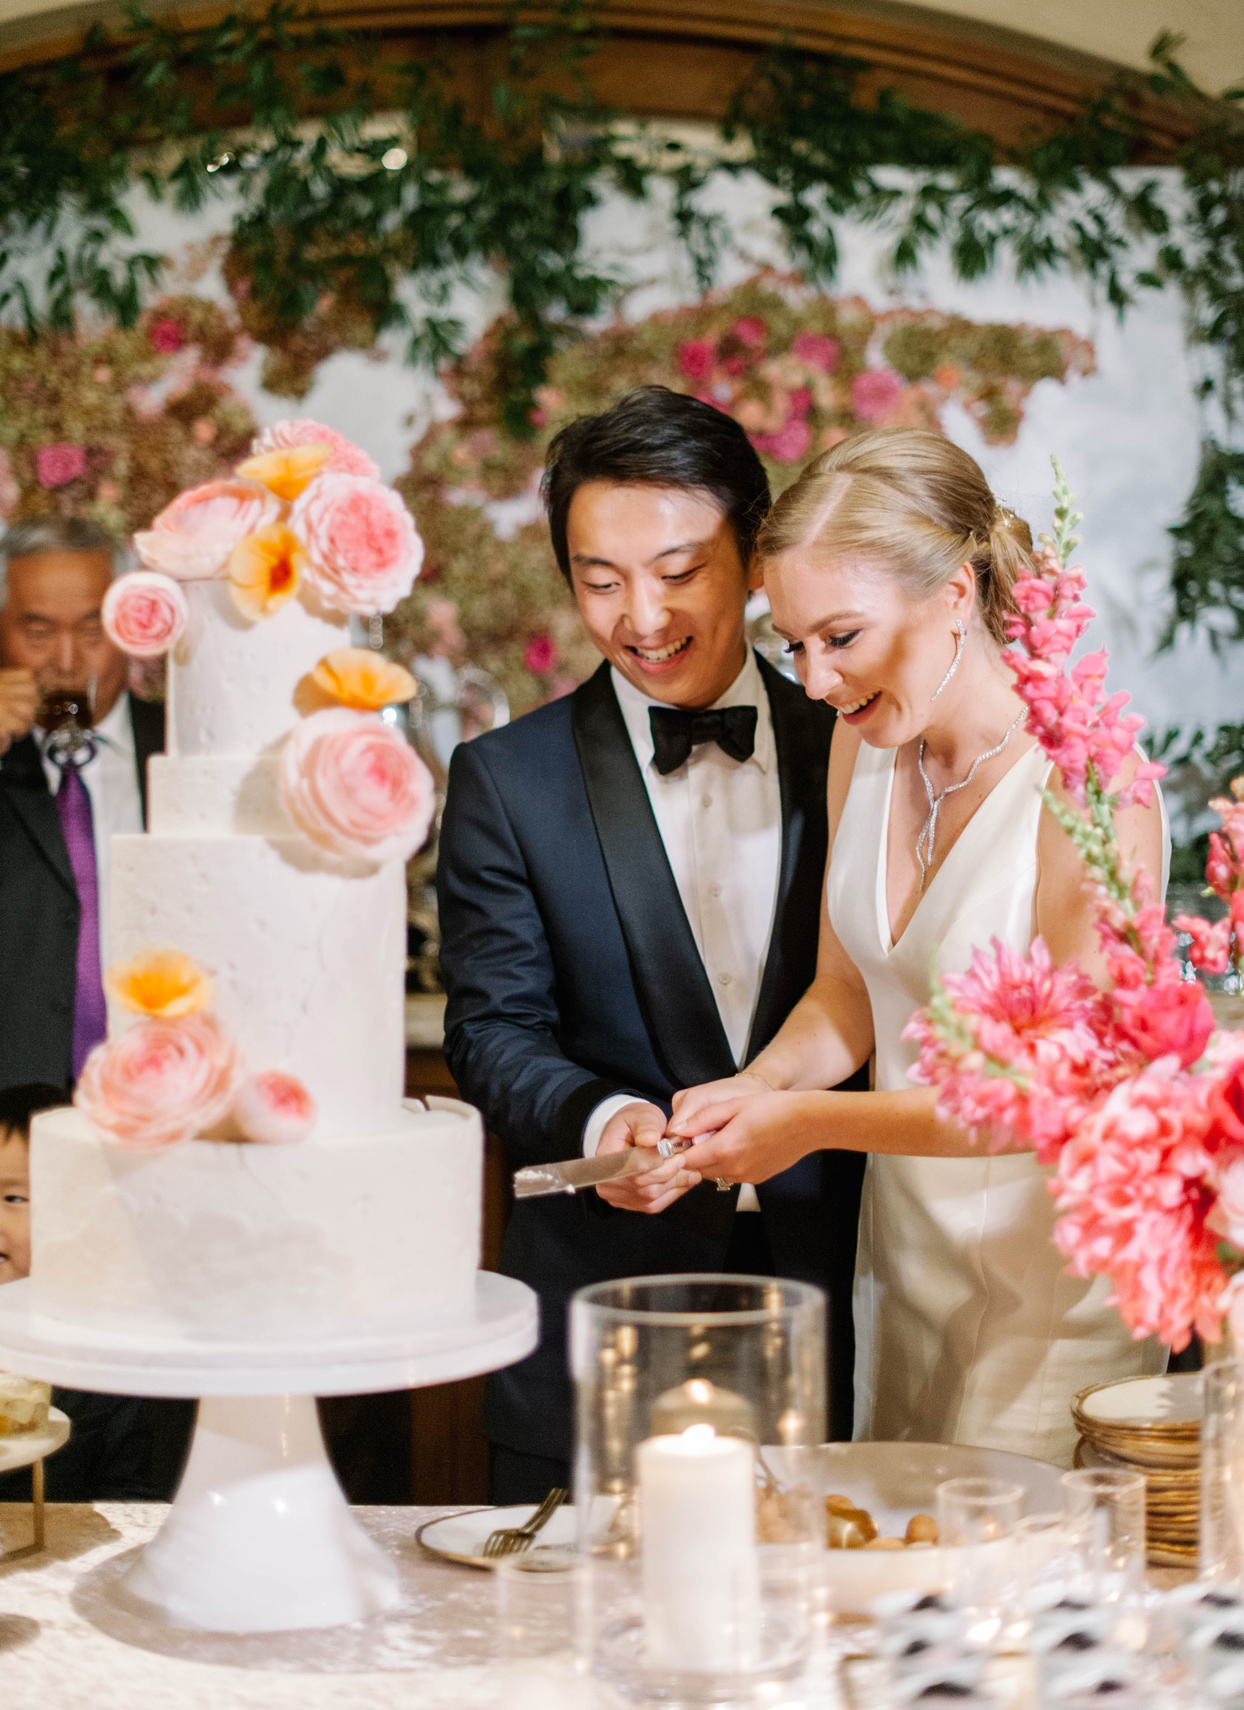 bride and groom cutting floral wedding cake